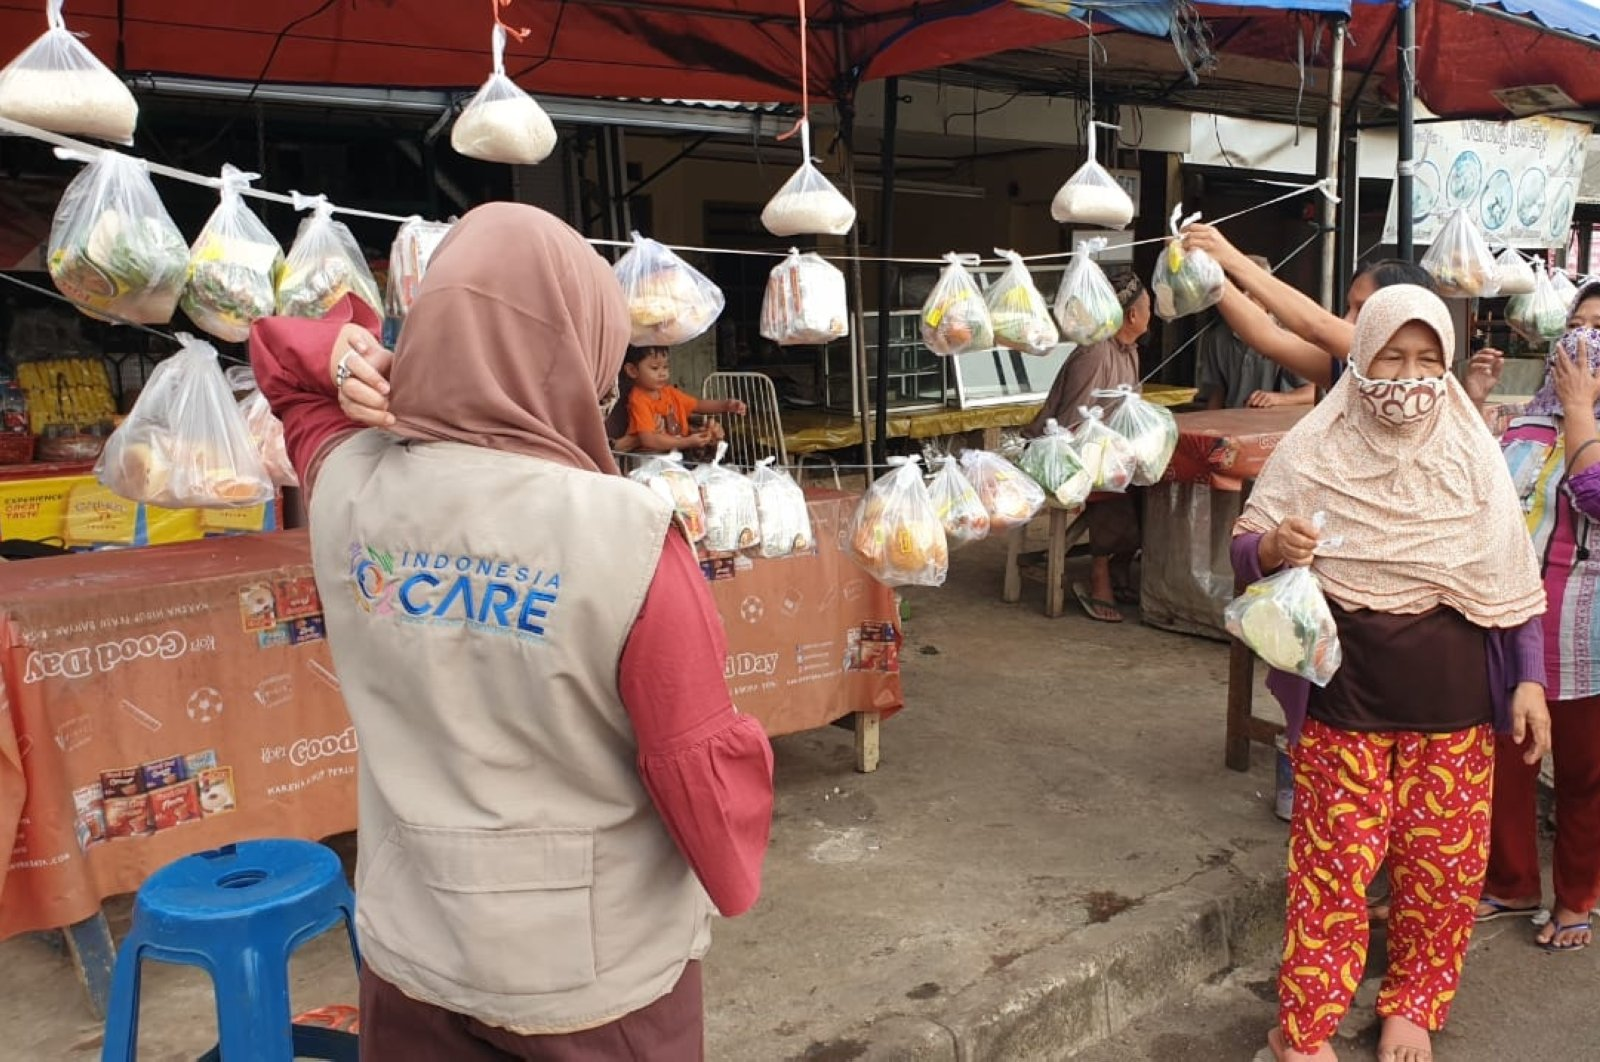 An Indonesia Care official and needy people take packages of groceries in Tangerang, southern Indonesia, Sept. 29, 2020. (AA Photo)